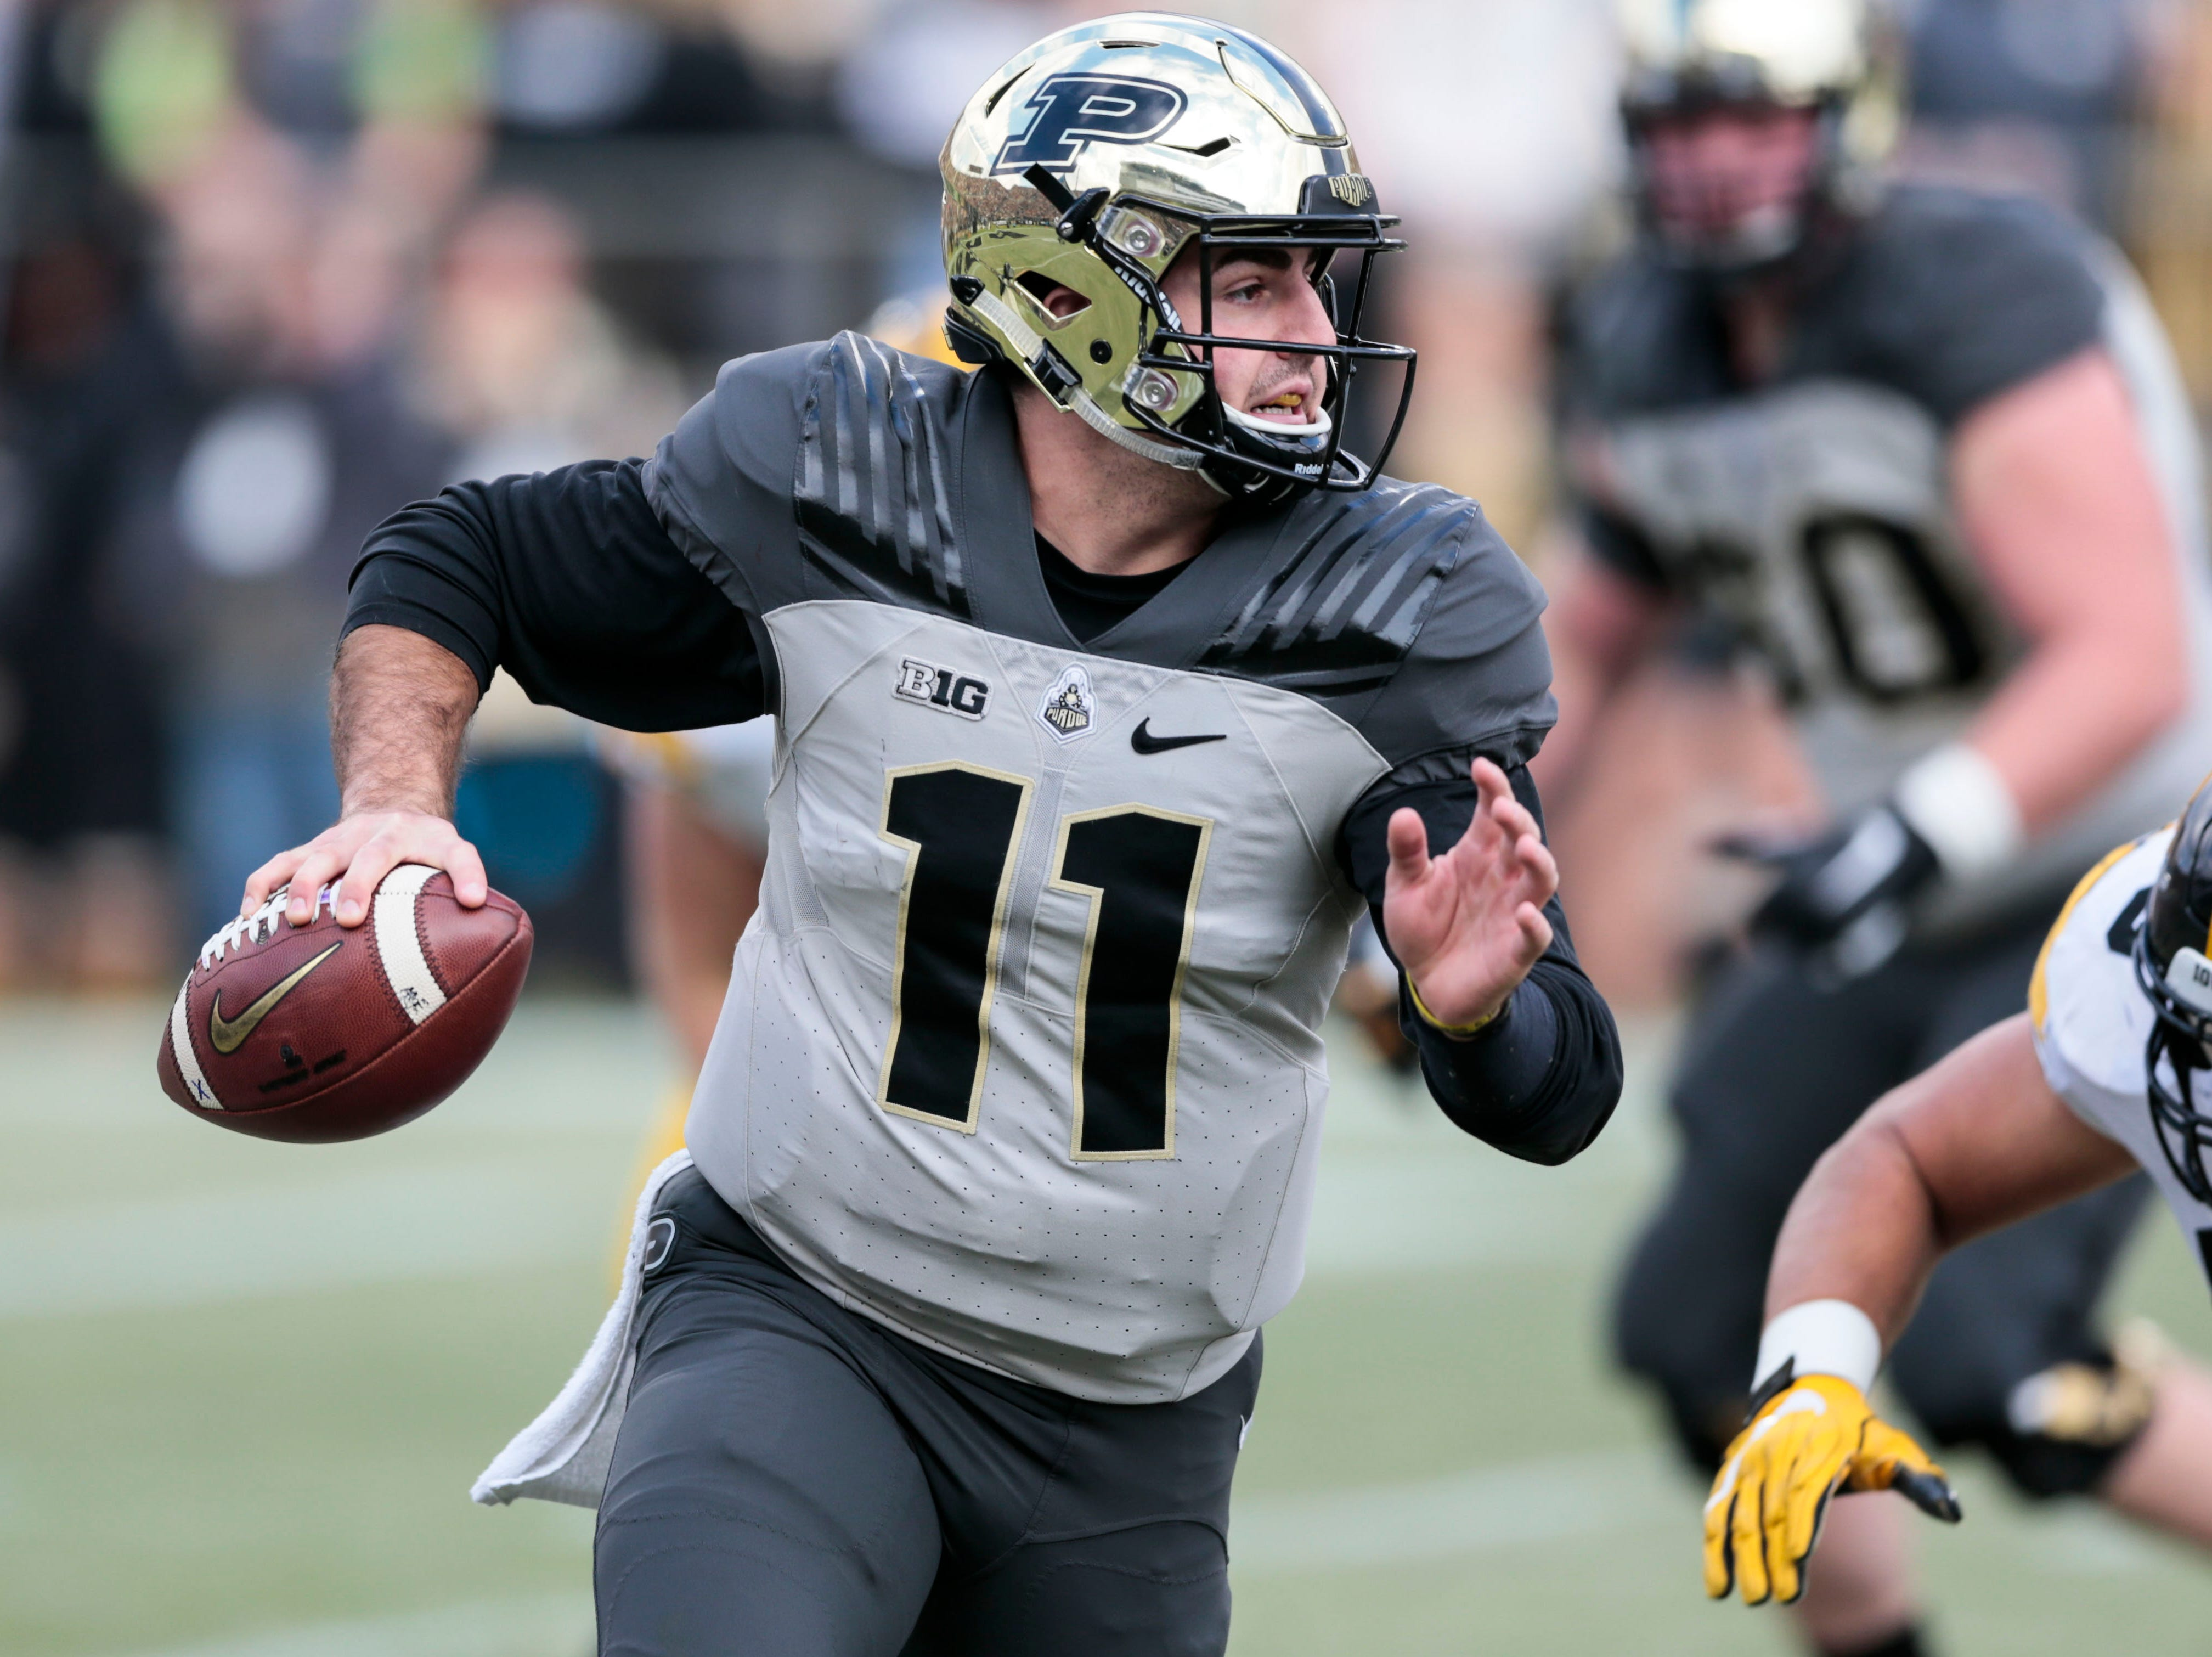 Purdue quarterback David Blough (11) runs with the ball while playing against Iowa in the first half of an NCAA college football game in West Lafayette, Ind., Saturday, Nov. 3, 2018.